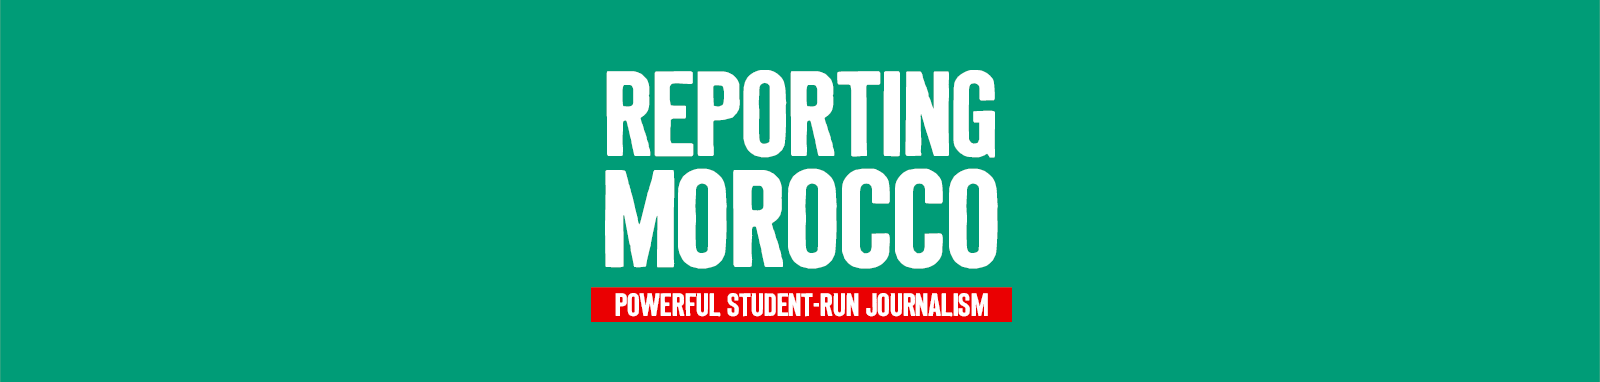 REPORTING MOROCCO